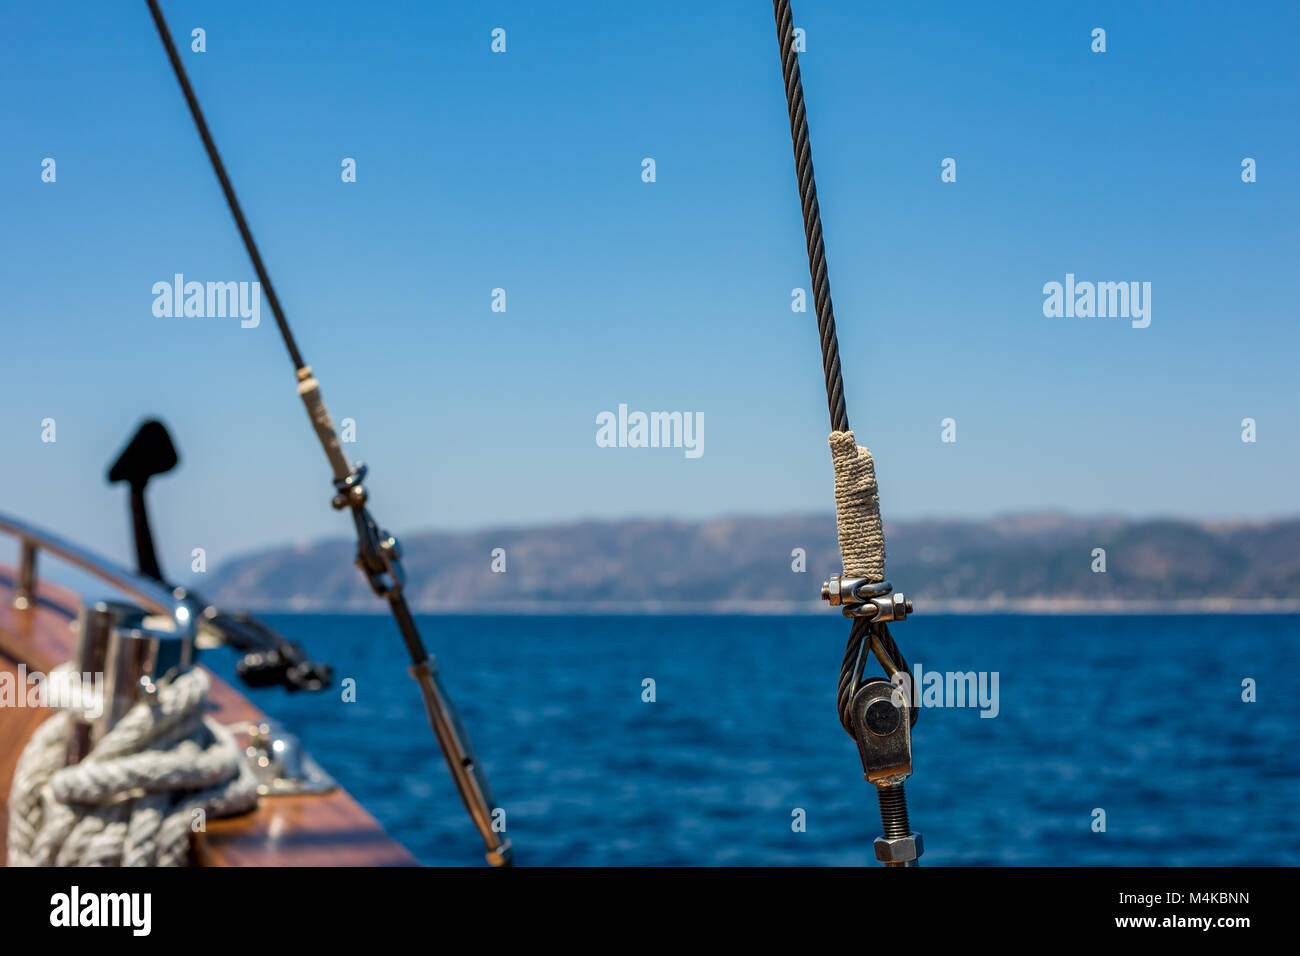 Metallic ship rope with nuts and bolts - Stock Image